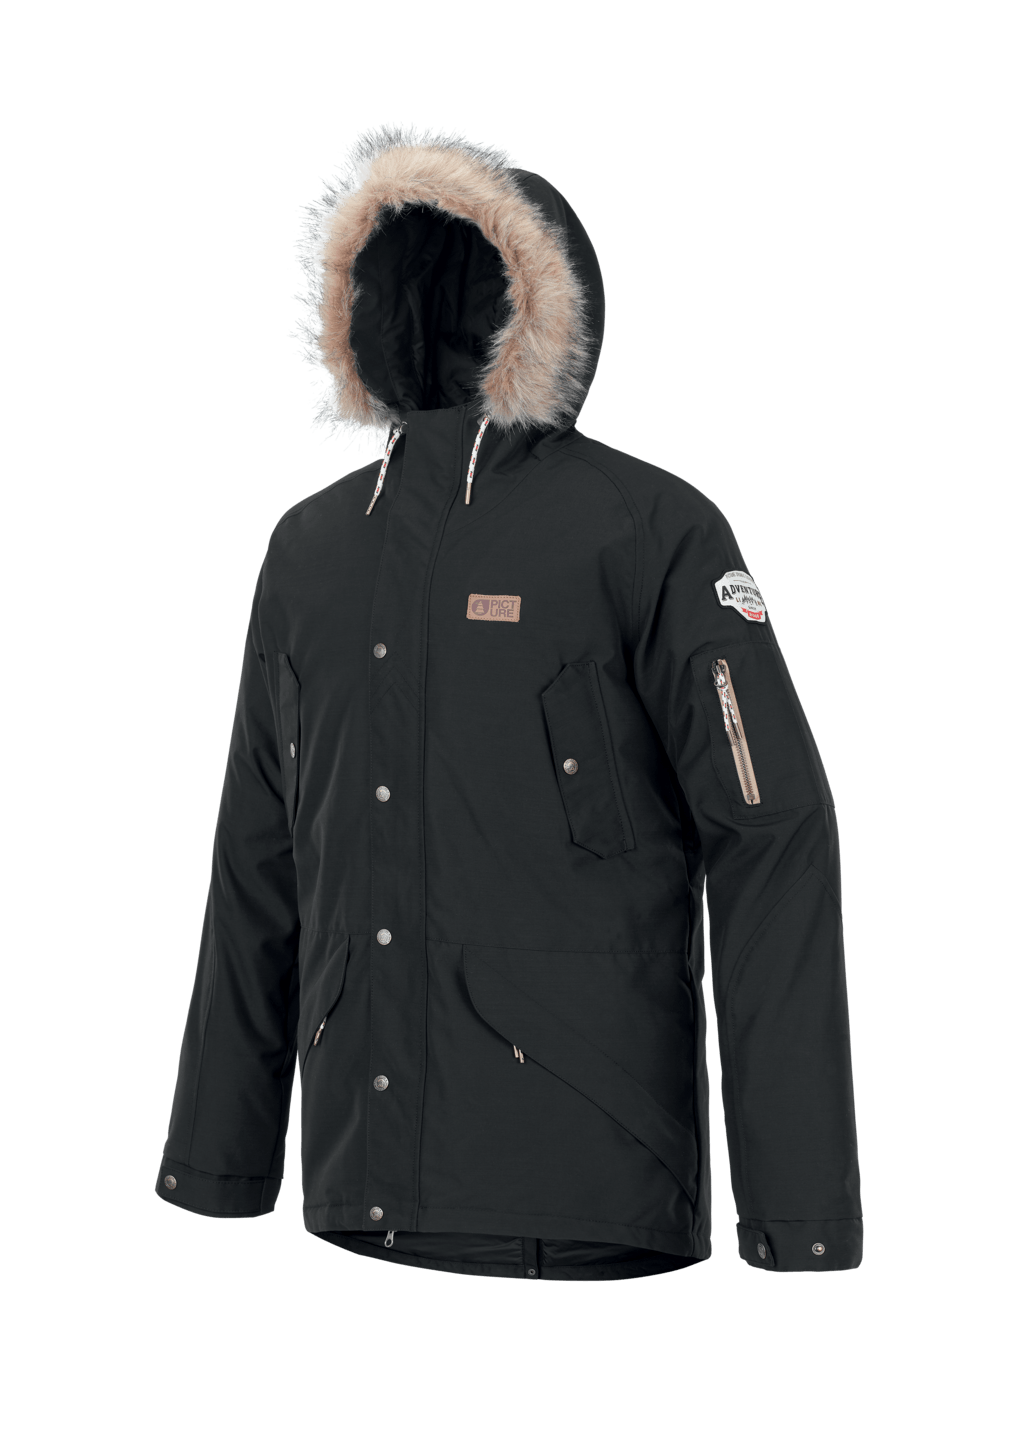 Picture Kodiac Mens Jacket - Black